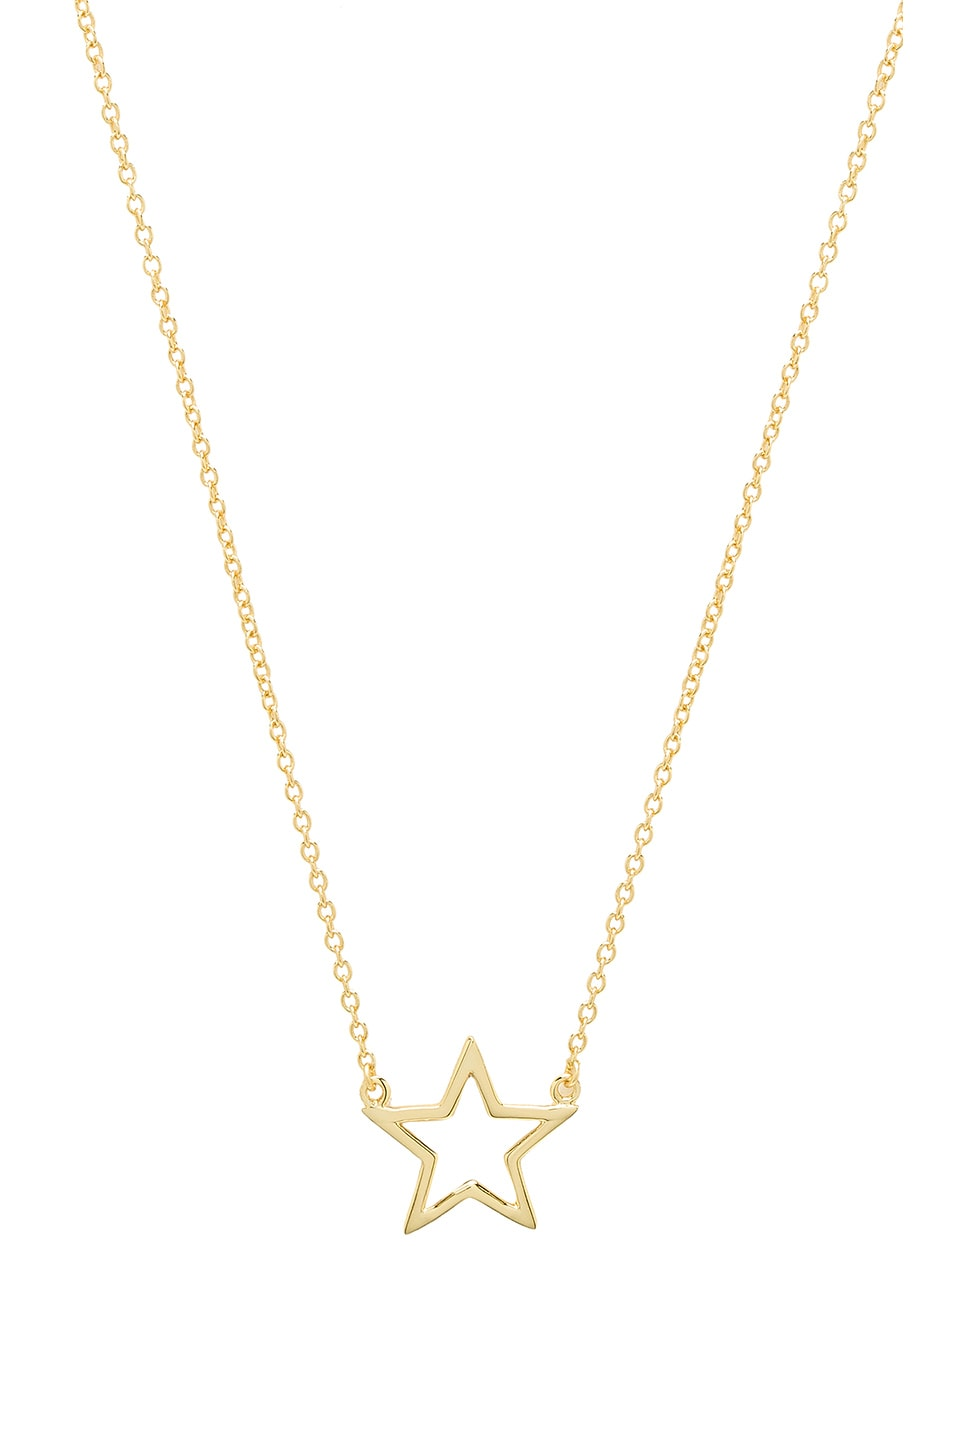 THE M JEWELERS NY THE STAR CUT OUT NECKLACE